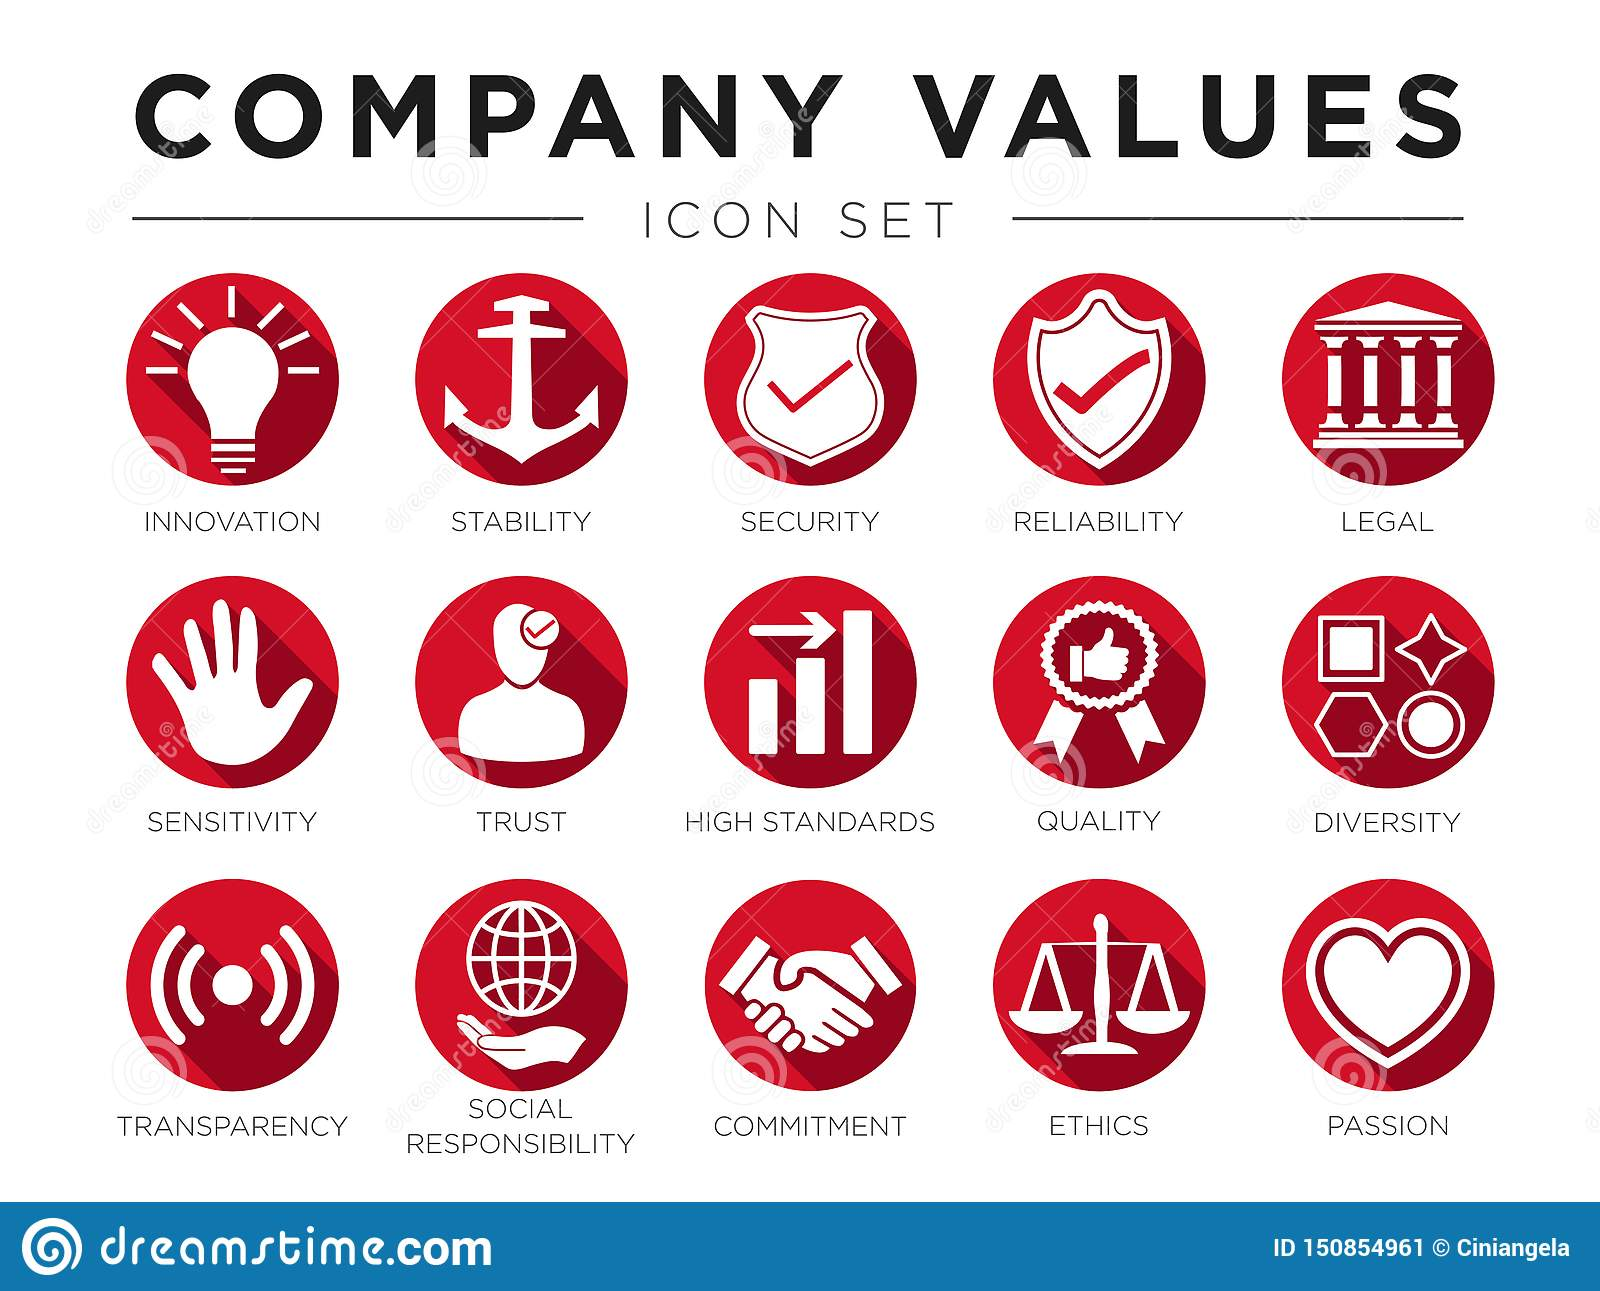 Business Flat Icon Set of Company Core Values. Innovation, Stability, Security, Reliability, Legal, Sensitivity, Trust, High